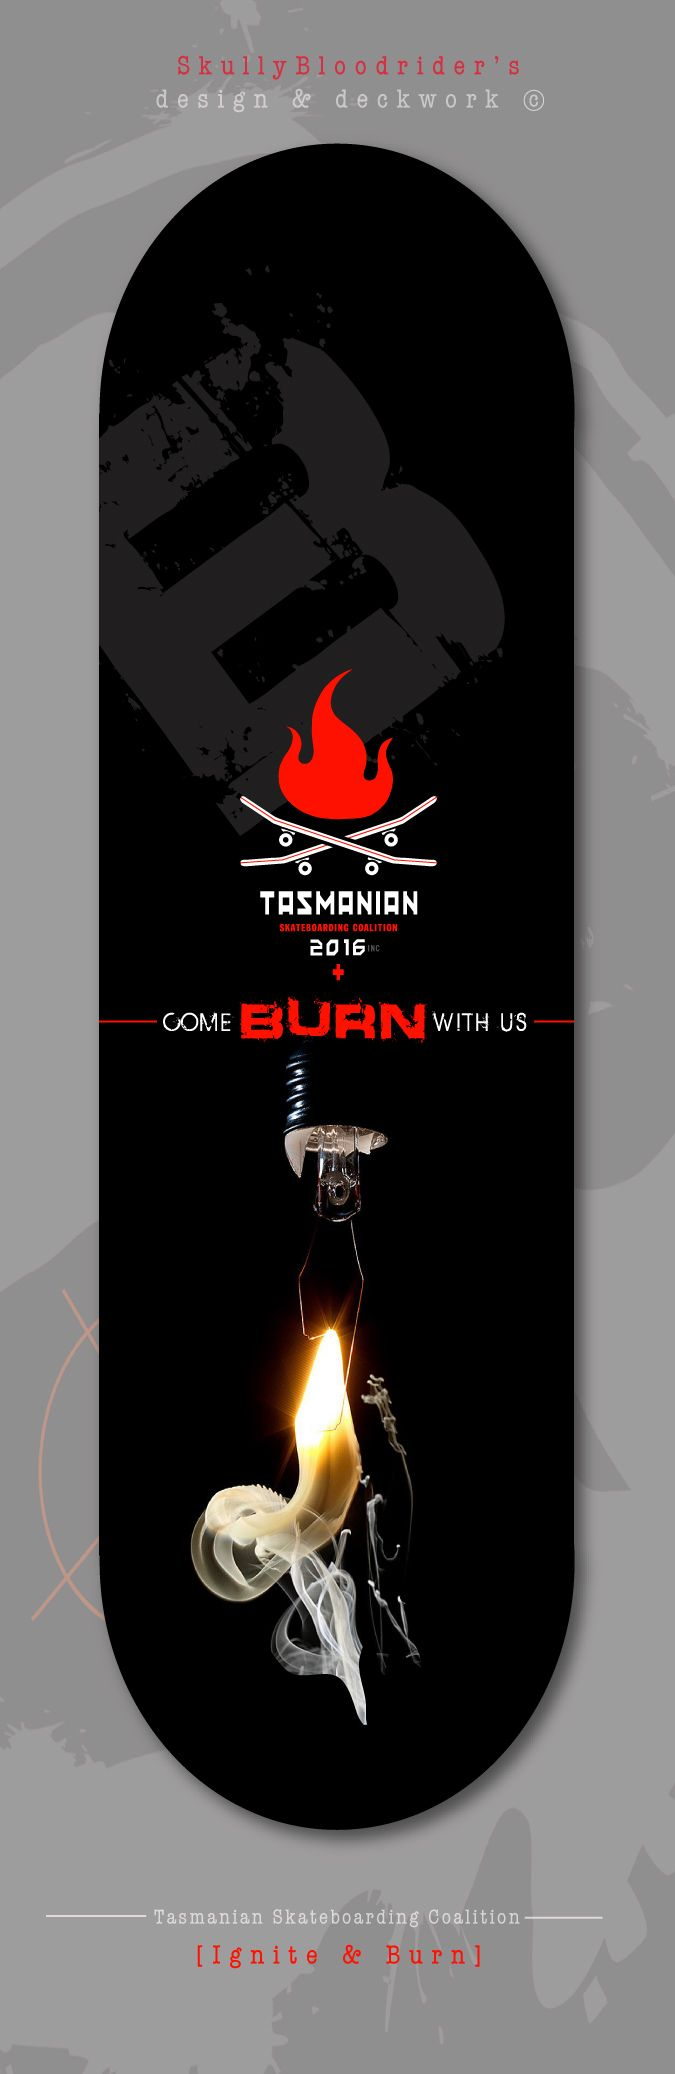 'Ignite & Burn'... deck design, words to Skate & Live by. Photography by: Juan Zambrano. Time to turn up the heat and see who burns brightest SkullyBloodrider 7.5.2016.